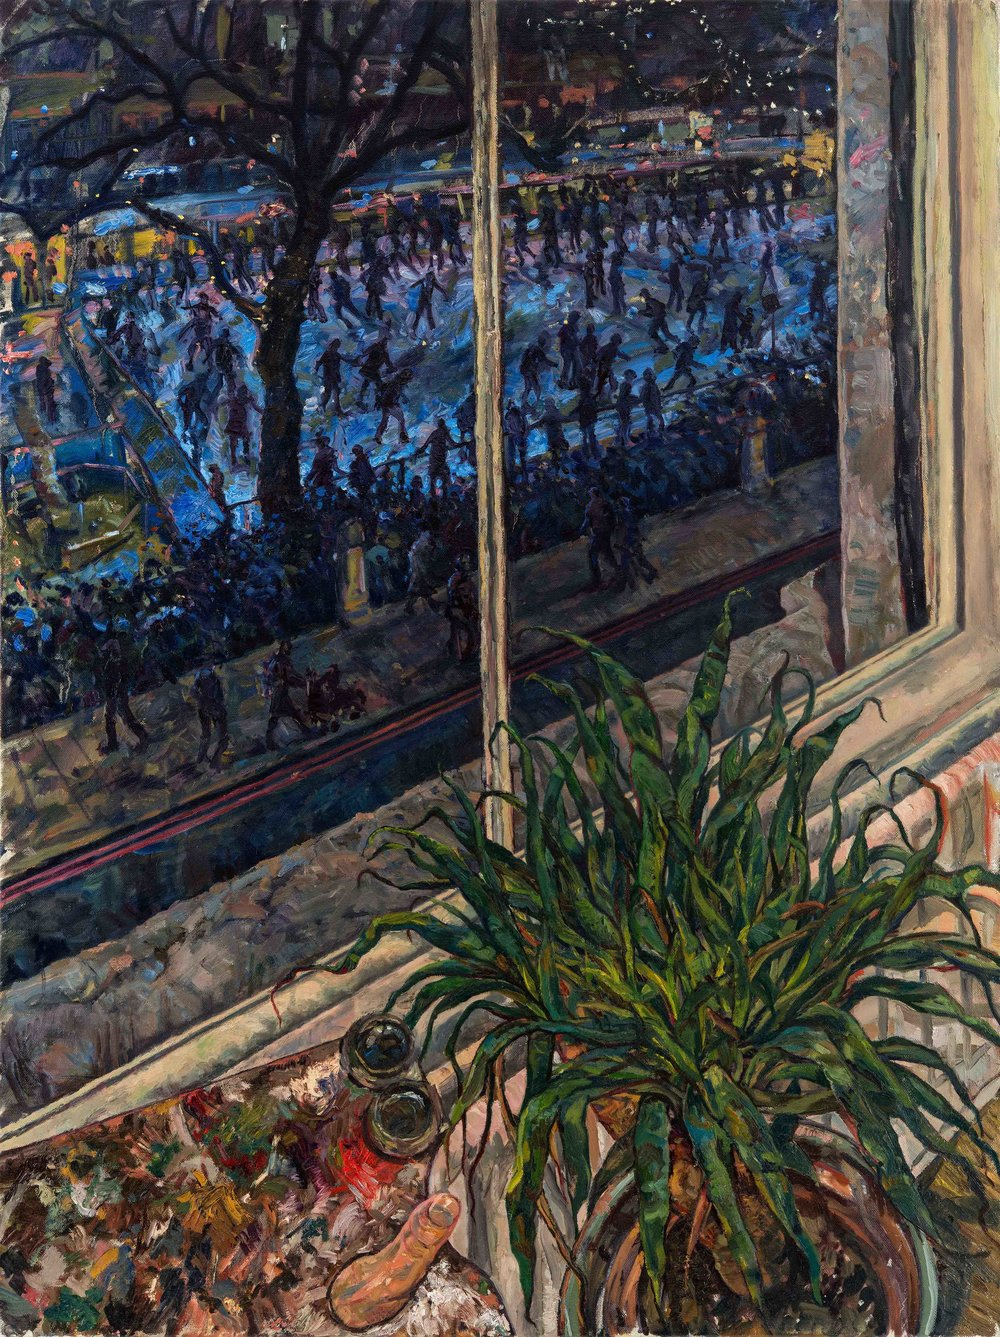 Tom Harrison, From 15 Cromwell Road, Oil On Canvas, 105 cm x 80 cm x 02 cm